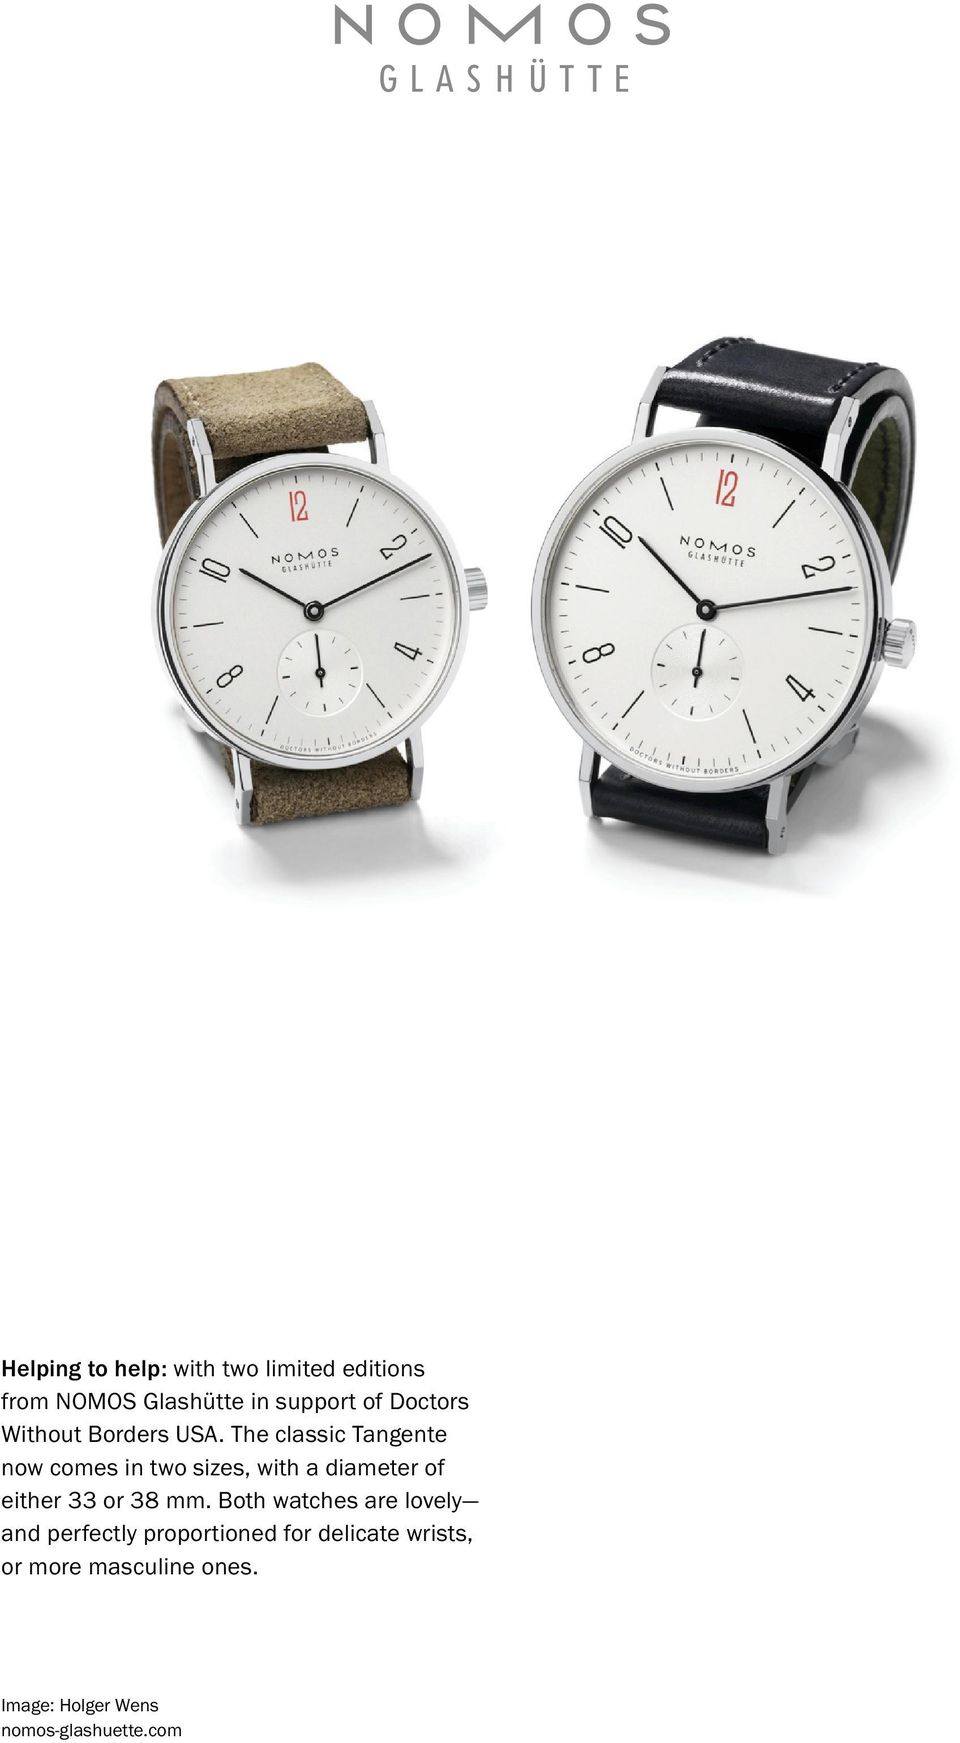 The classic Tangente now comes in two sizes, with a diameter of either 33 or 38